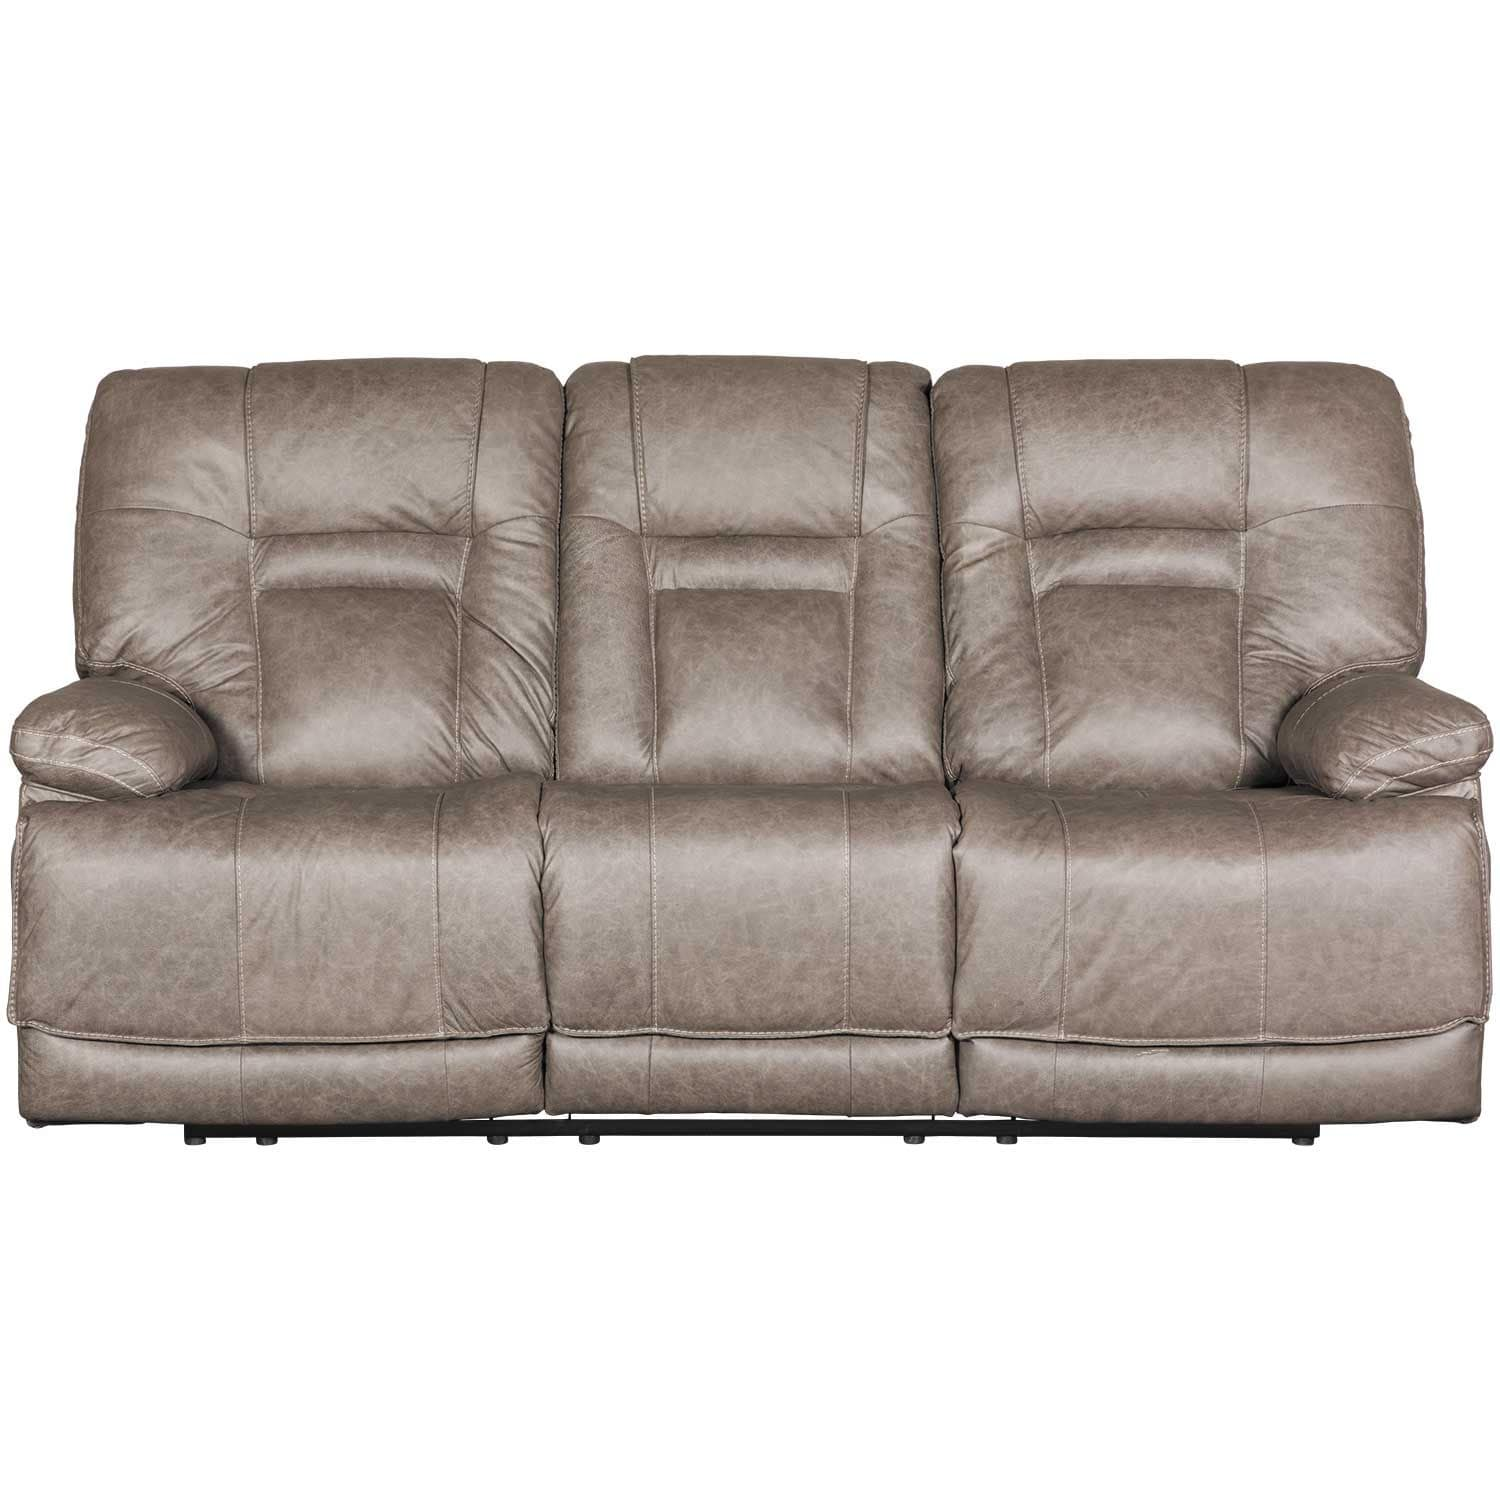 Wurstrow Smoke Italian Leather Power Reclining Sofa